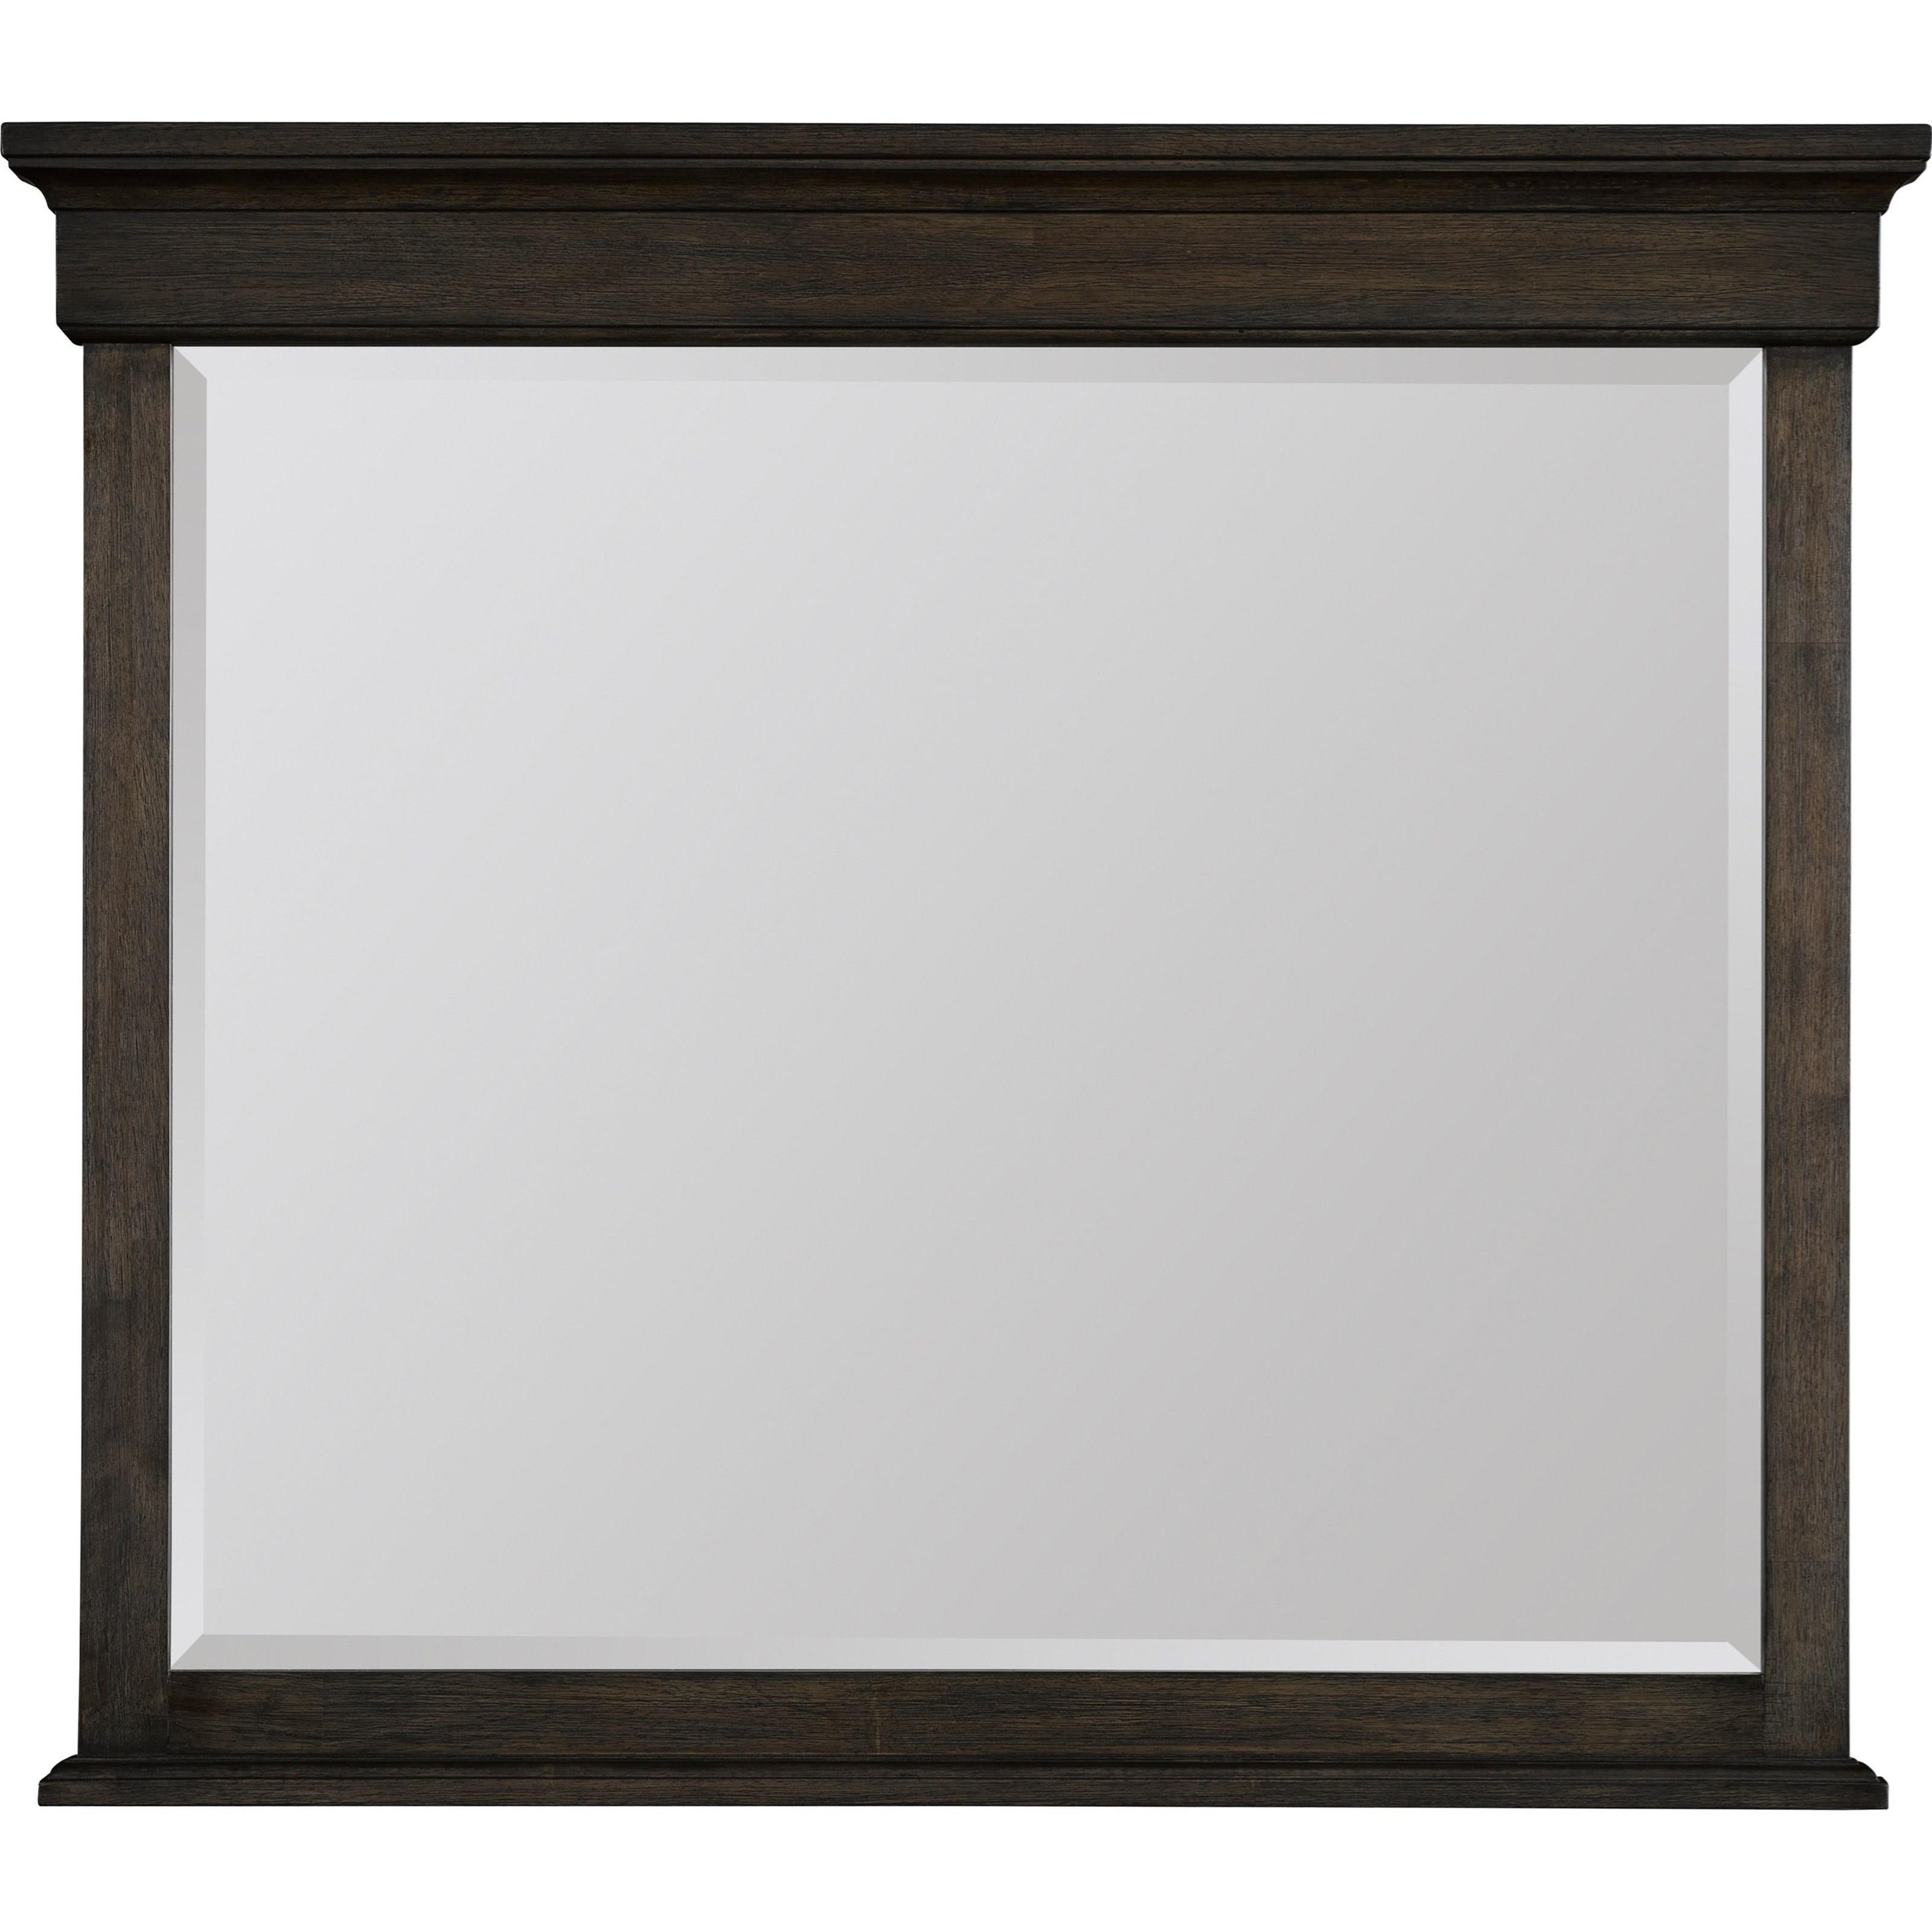 Broyhill Furniture Ashgrove Dresser Mirror - Item Number: 4547-236NUT